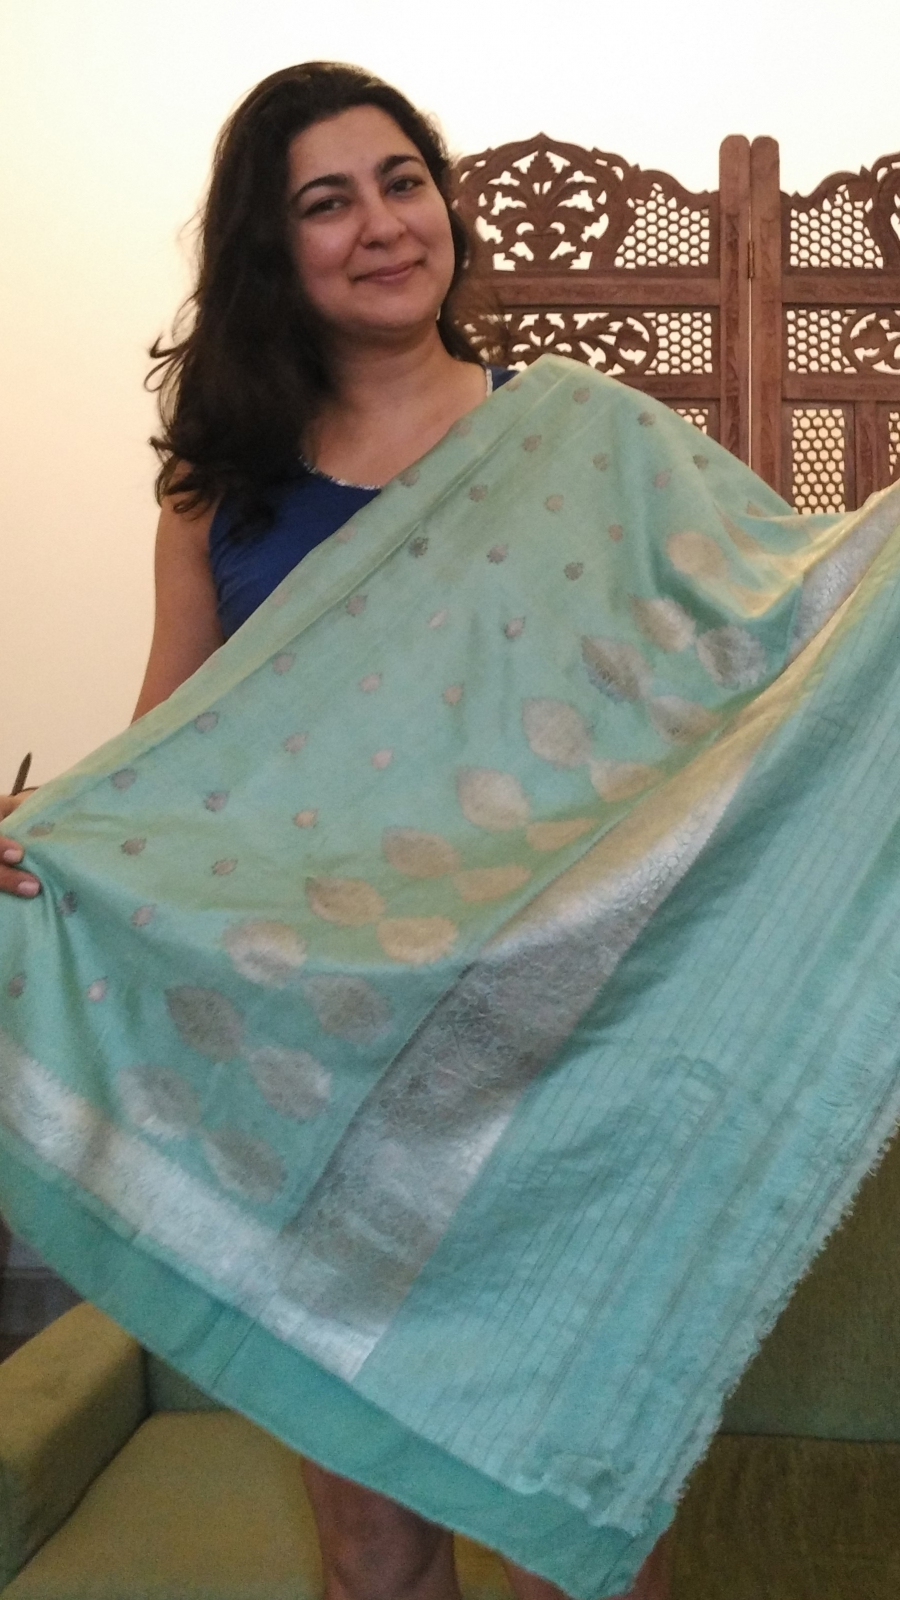 Chhavi Sachdev treasures her grandmother's sari -- but she wouldn't wear it